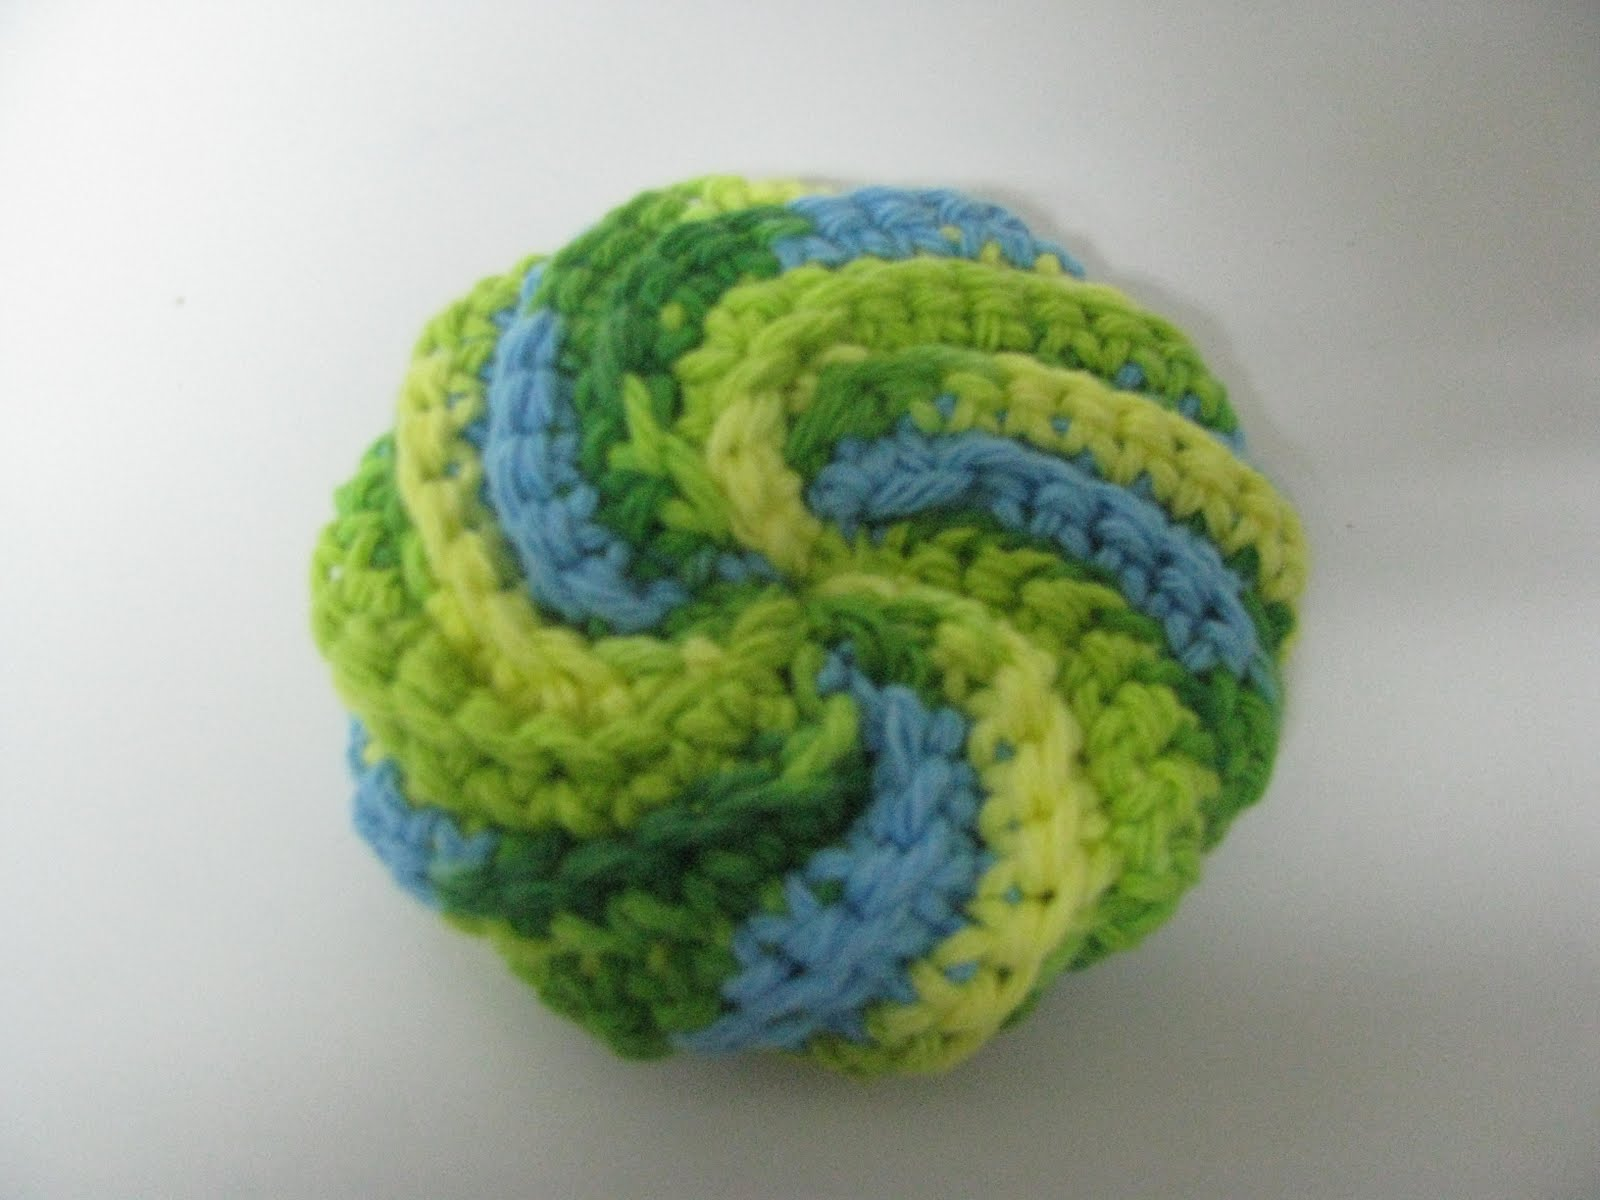 Crocheting Scrubbies With Netting : love finding new crochet patterns that are easy, creative, different ...